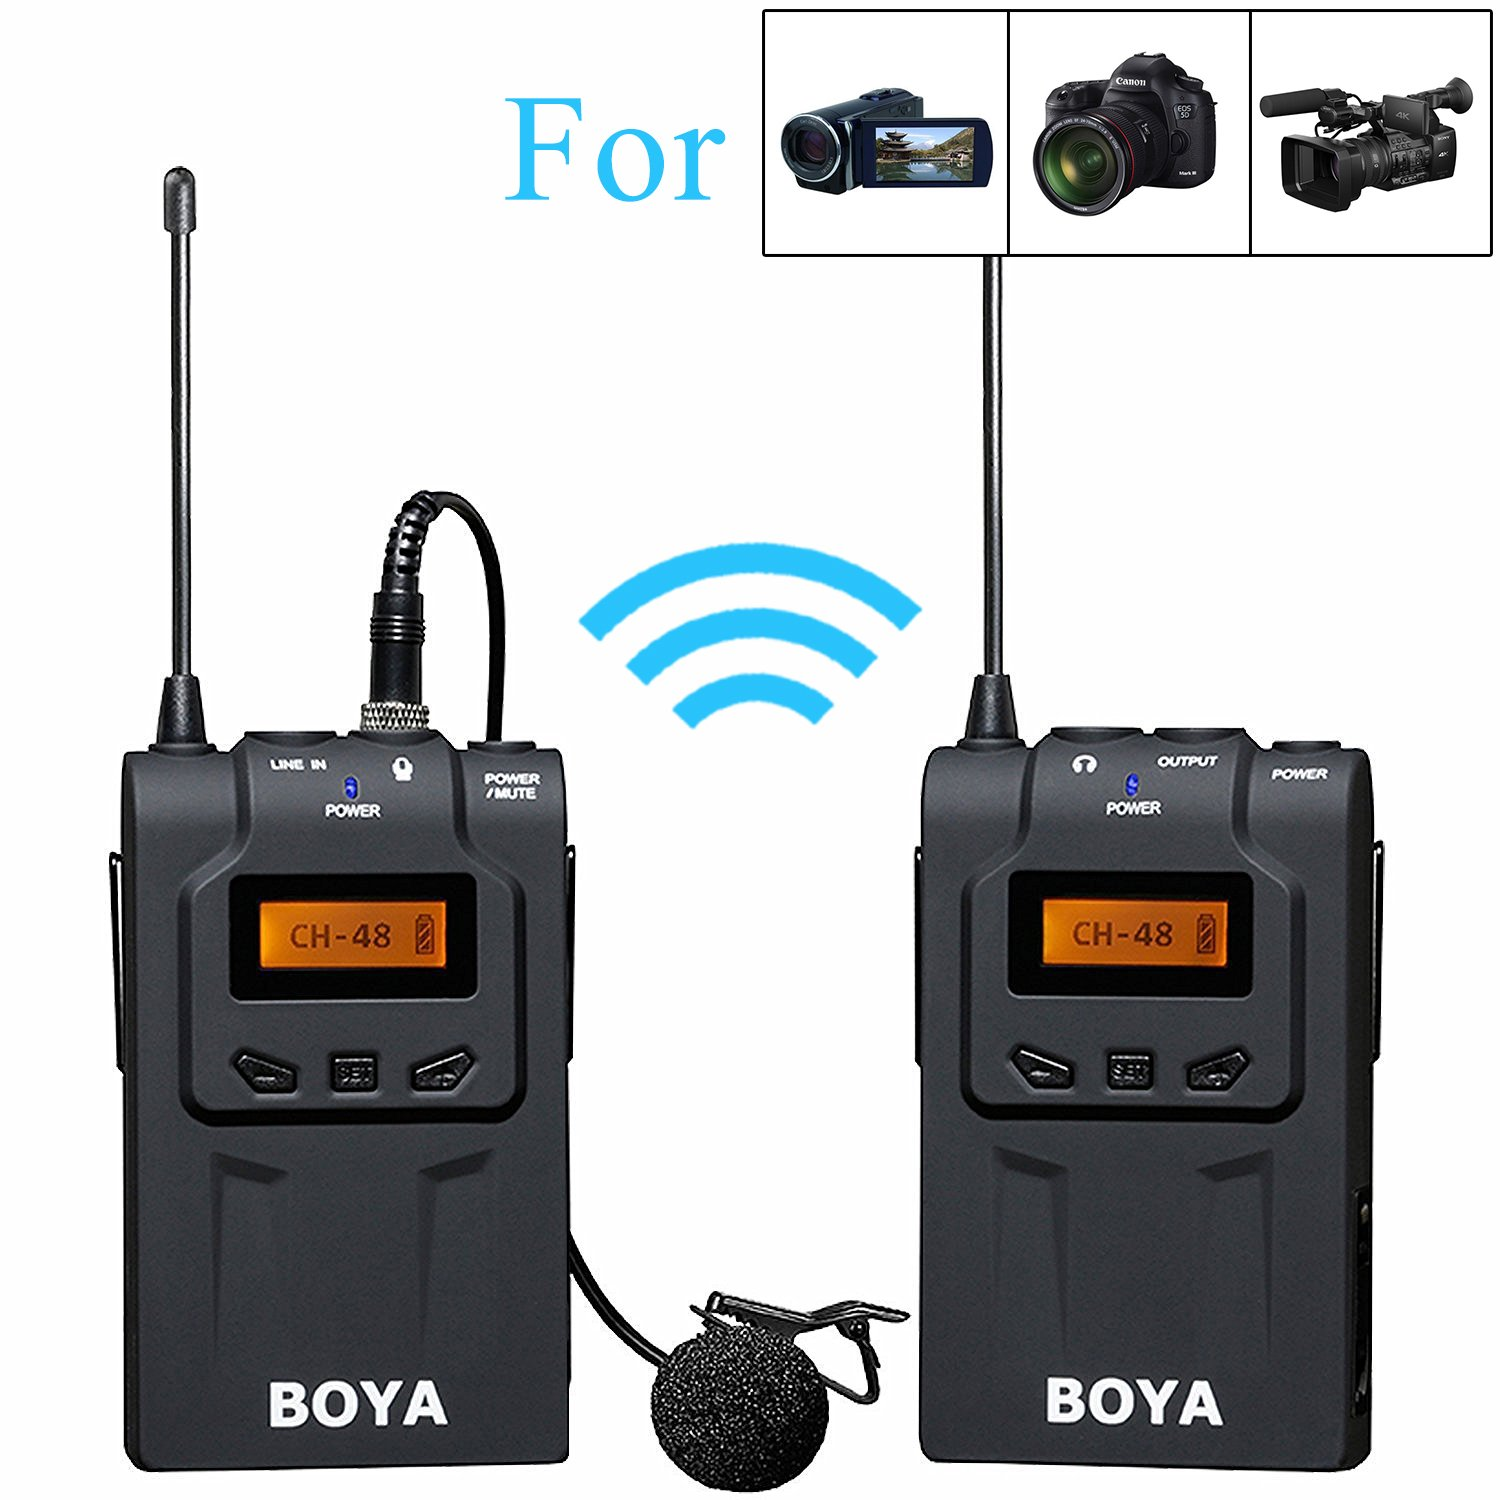 BOYA BY-WM24G 2.4GHz Wireless Lavalier Microphone System with Real-time Monitor for Canon 6D 600D 5D2 5D3 Nikon D800 D3300 DSLR Cameras Sony A9 Panasonic Camcorders BY-WM5